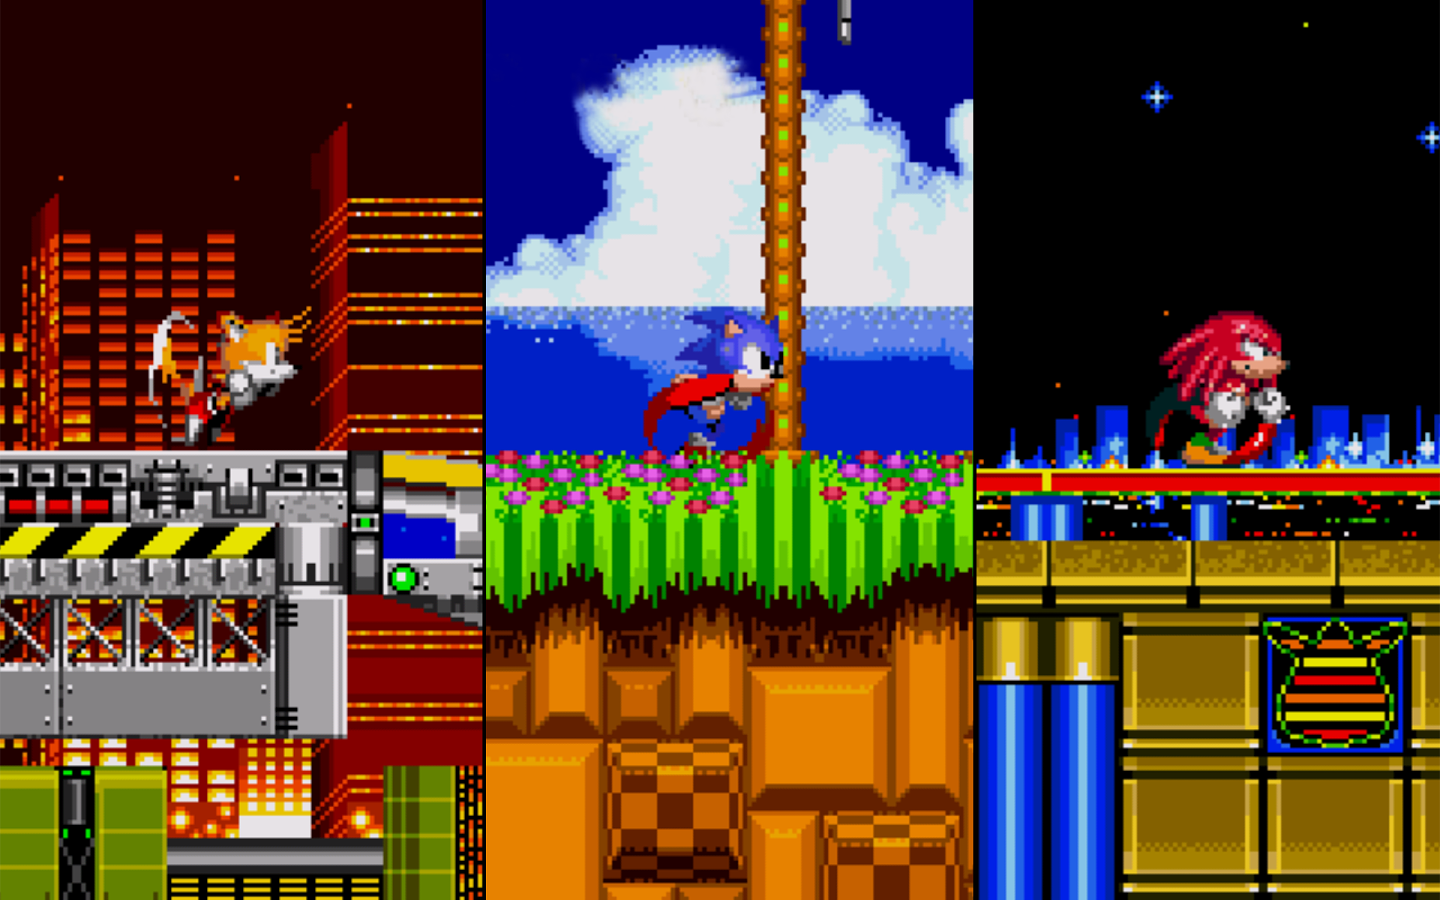 New Game Sonic The Hedgehog 2 Lands On Android With A New Level